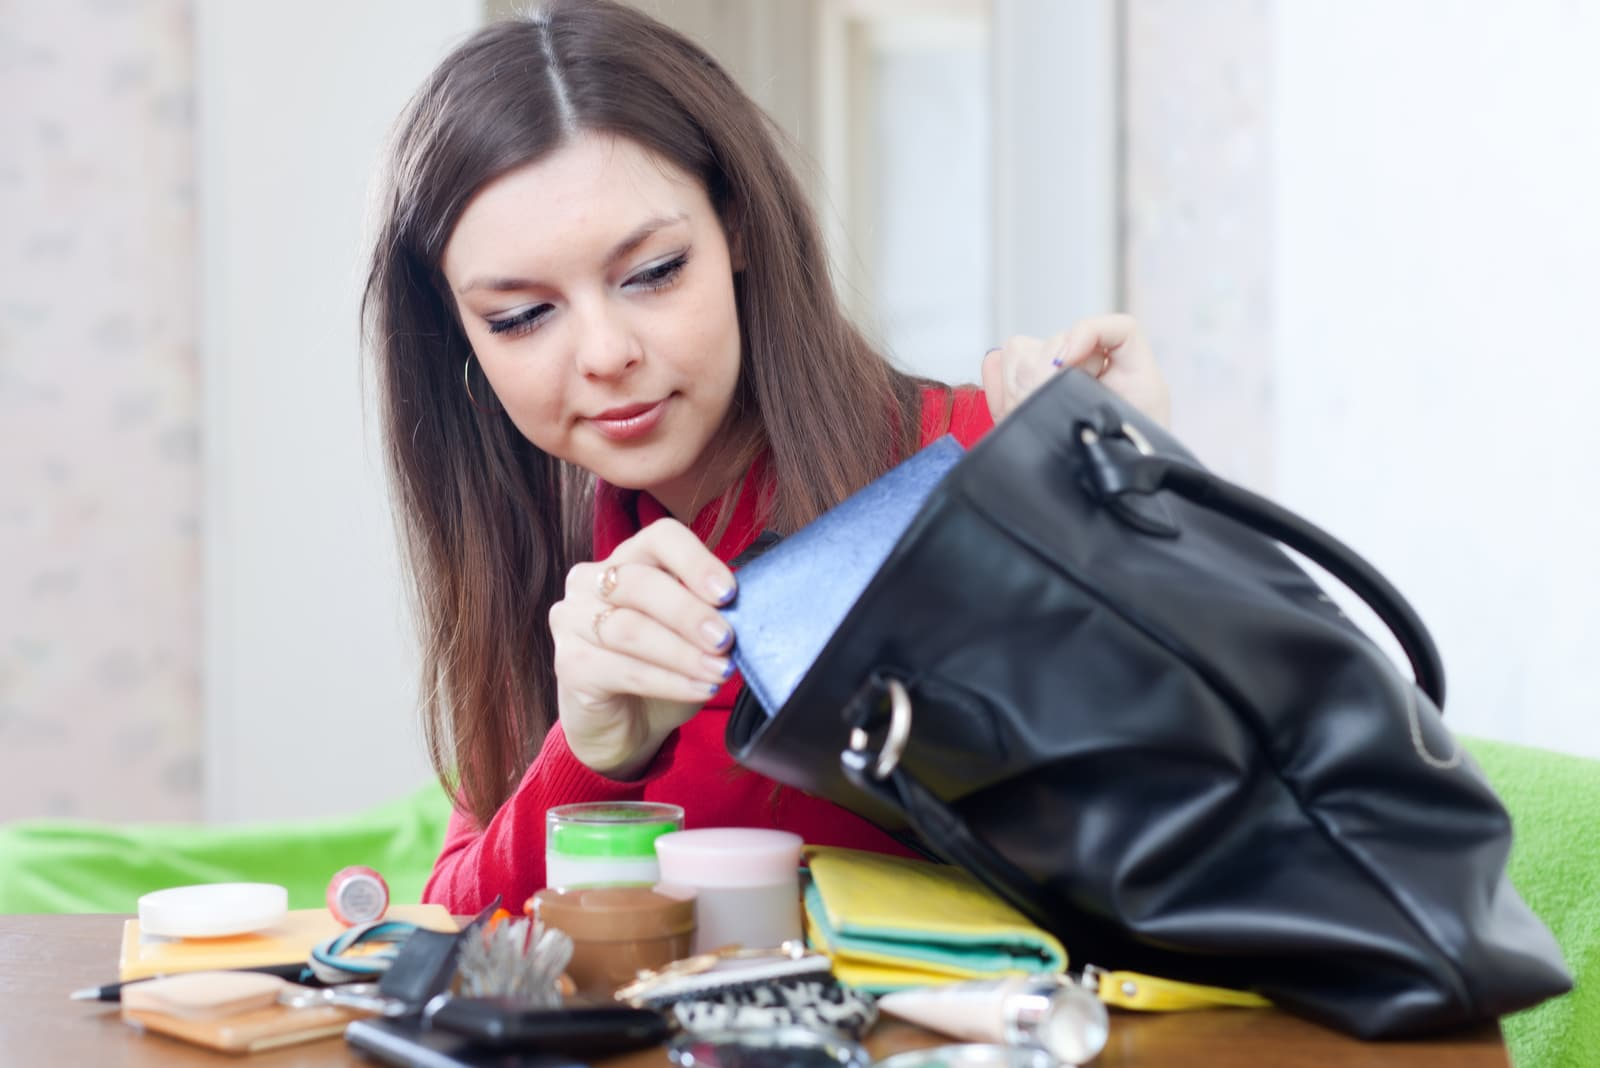 a woman is looking for something in her purse